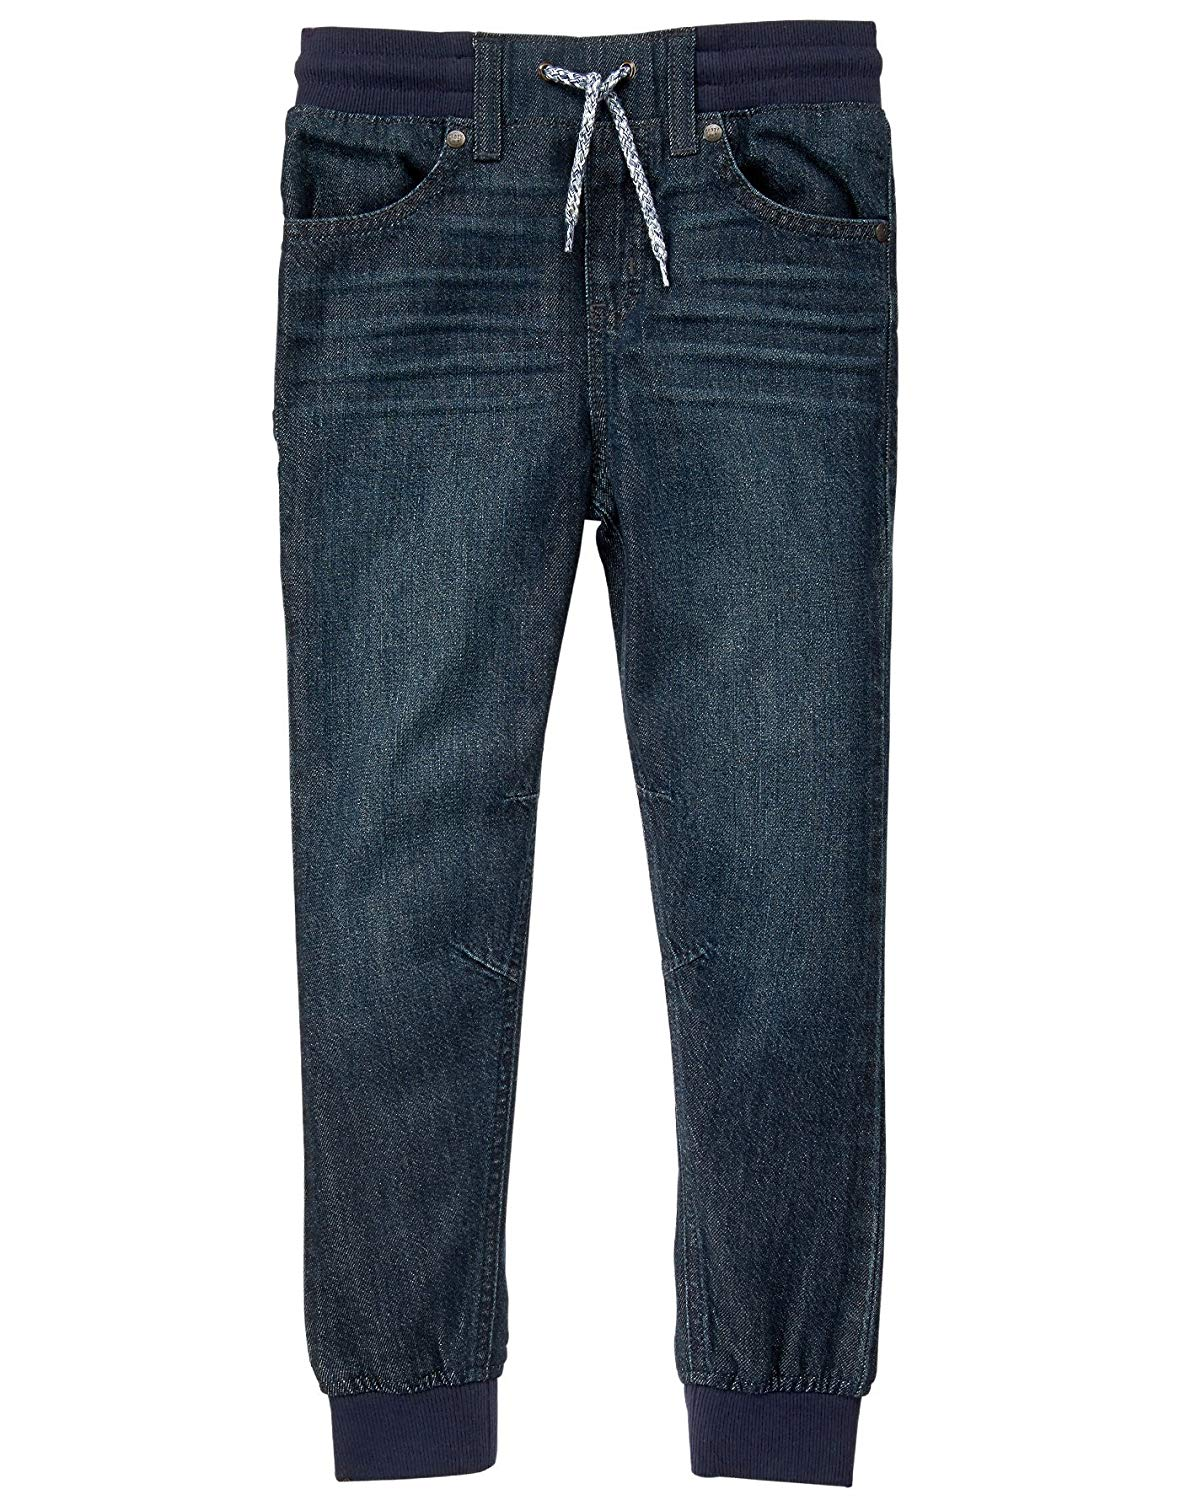 510c0530547f67 ... pants joggers casual men's trousers. Get Quotations · Crazy 8 Boys'  Pull-on Denim Jogger